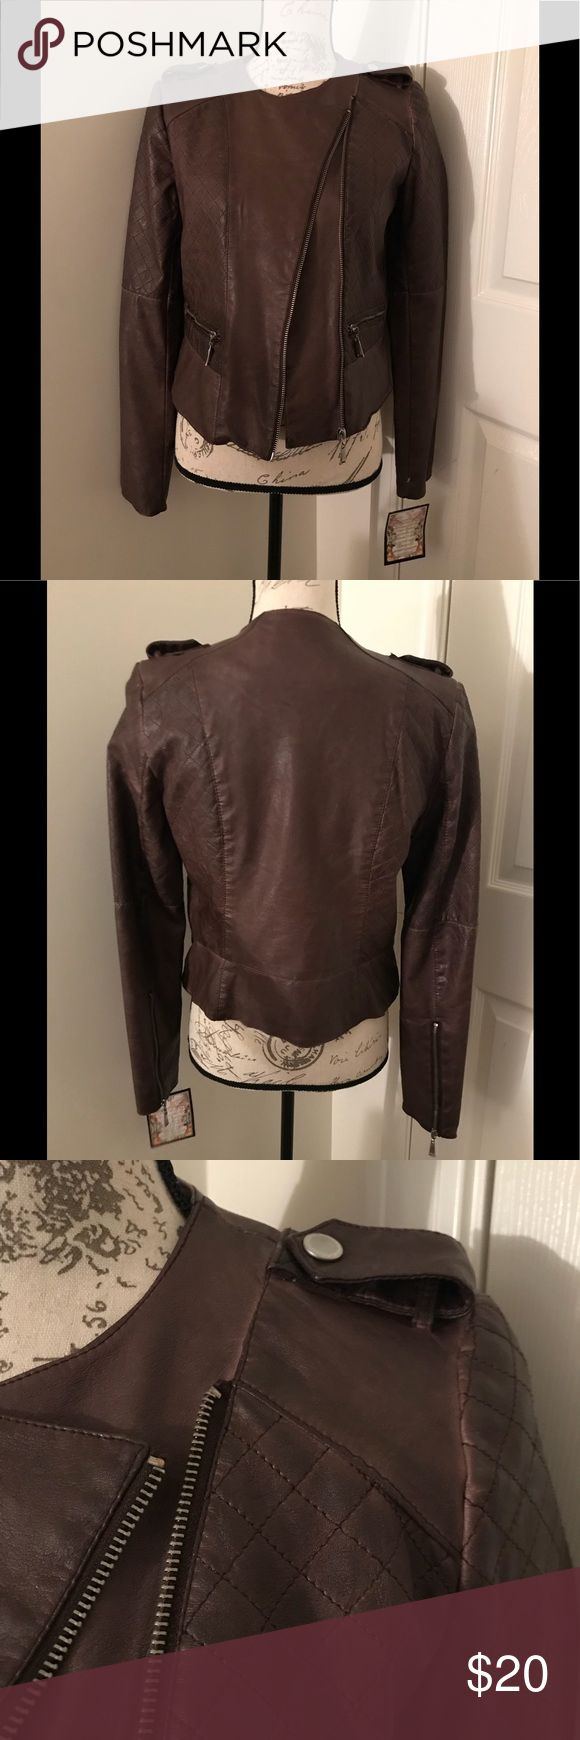 🐻Moto Jacket🐻 -Faux Leather Jacket  -2 small pockets in the front, button detail on both shoulders. Also zips up both sleeves -Chocolate brown in color -New with tag -Size Small  ✅Absolutely NO Trades ✅Same/Next Business Day Shipping  ✅All Items are New/Gently Worn 🐈Comes From a Smoke Free/Pet Free Home Jackets & Coats